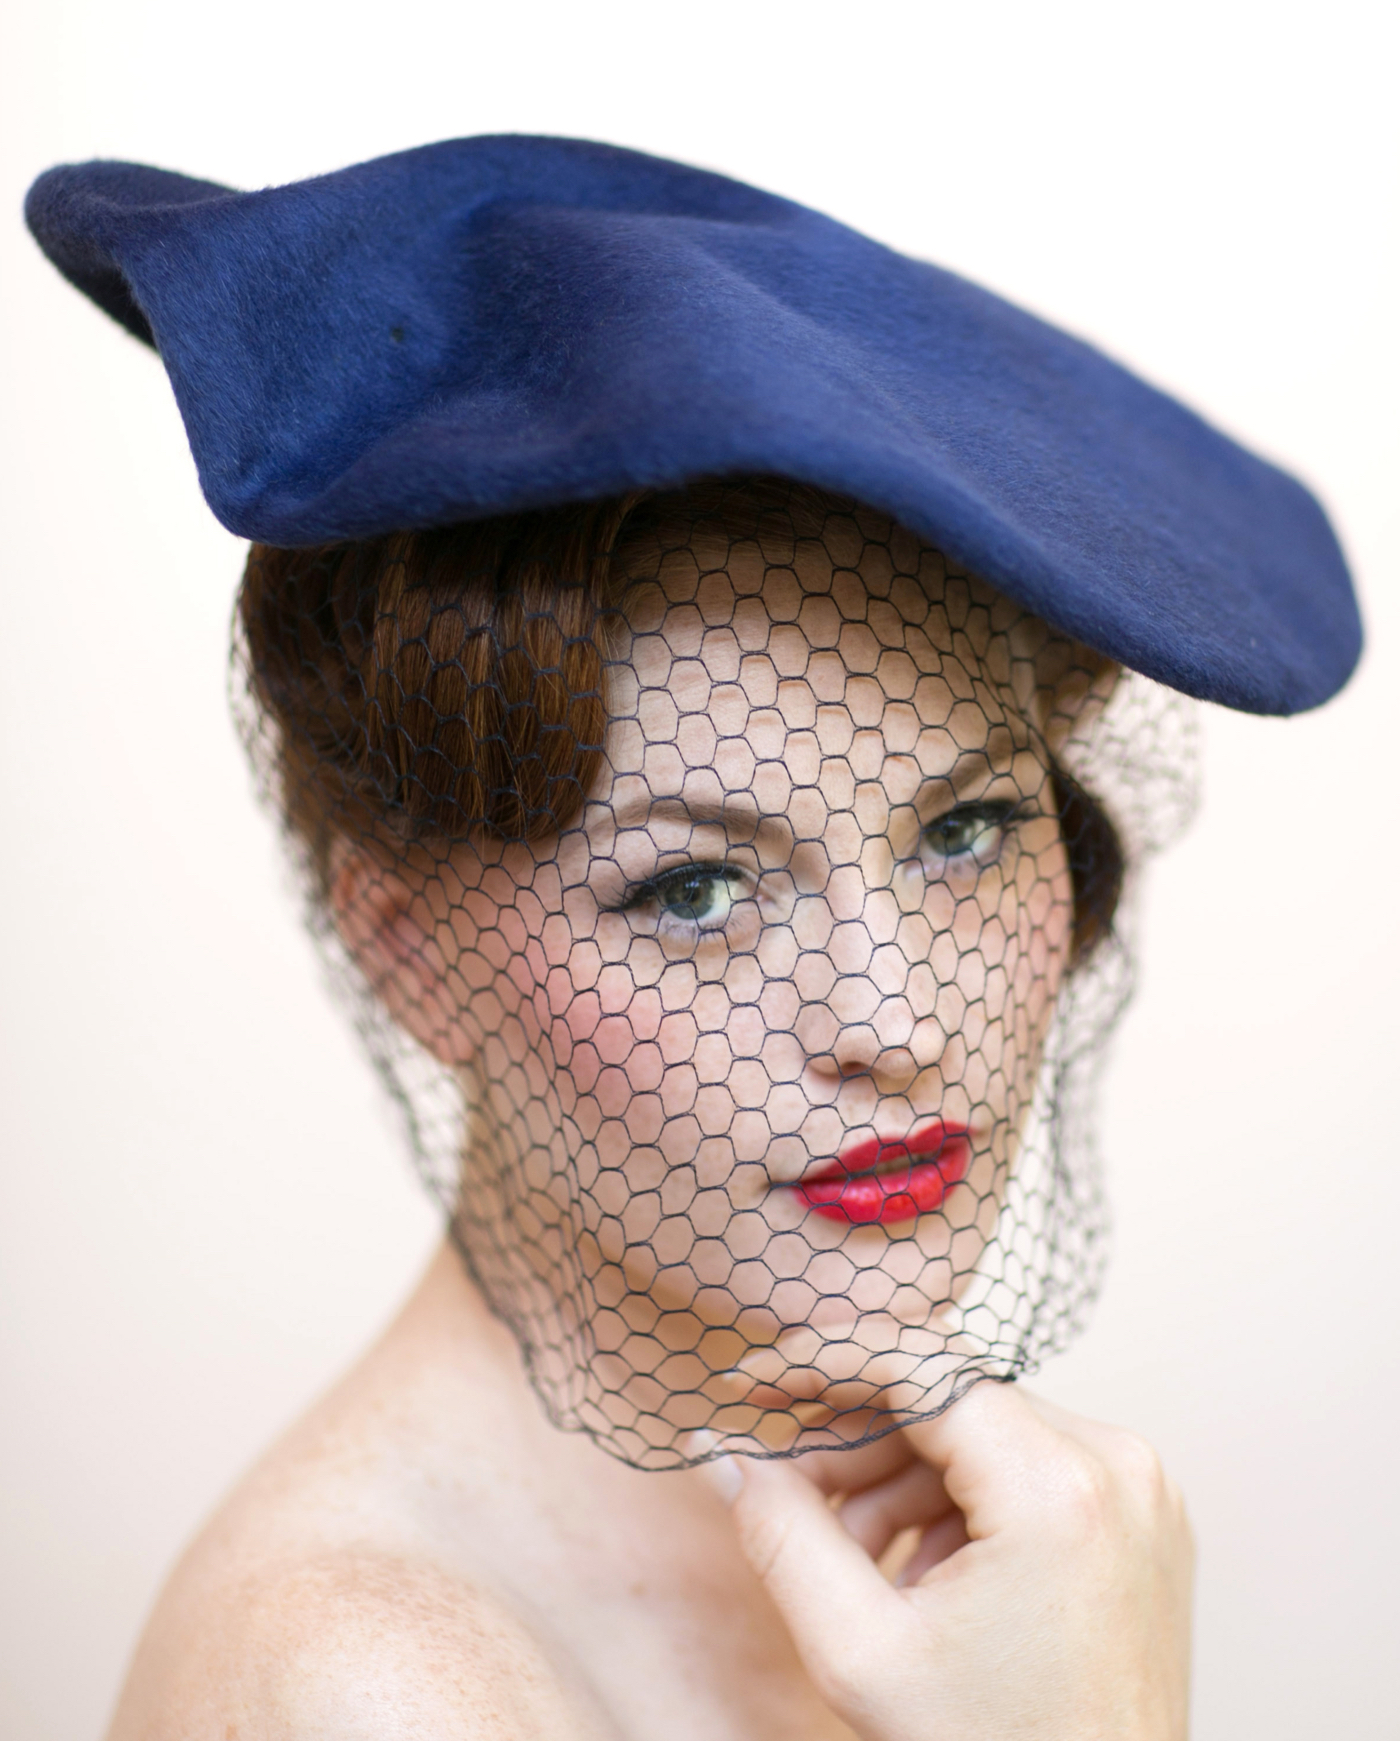 1940s vintage hat with veil photo by Elizabeth Sisson